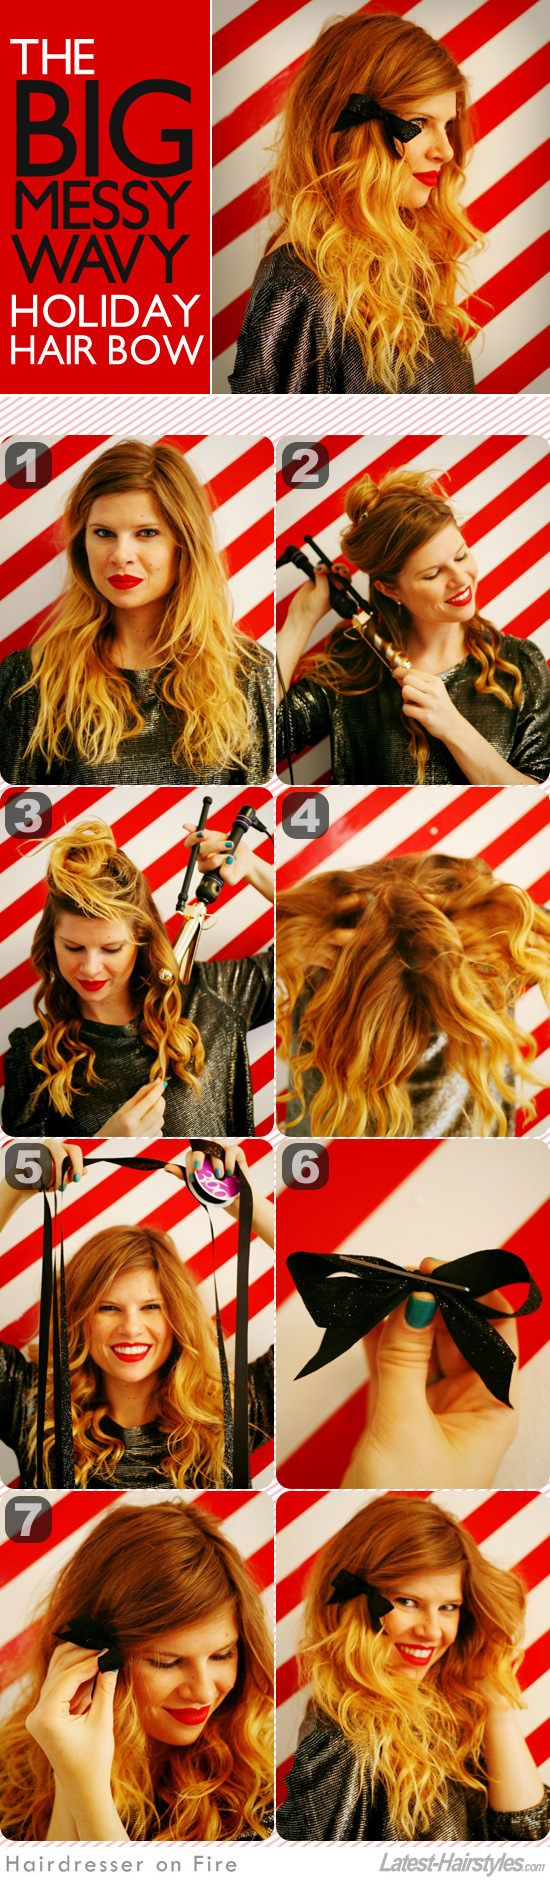 Holiday Hair Tutorial: Big Messy Waves With a Bow! | Latest-Hairstyles.com